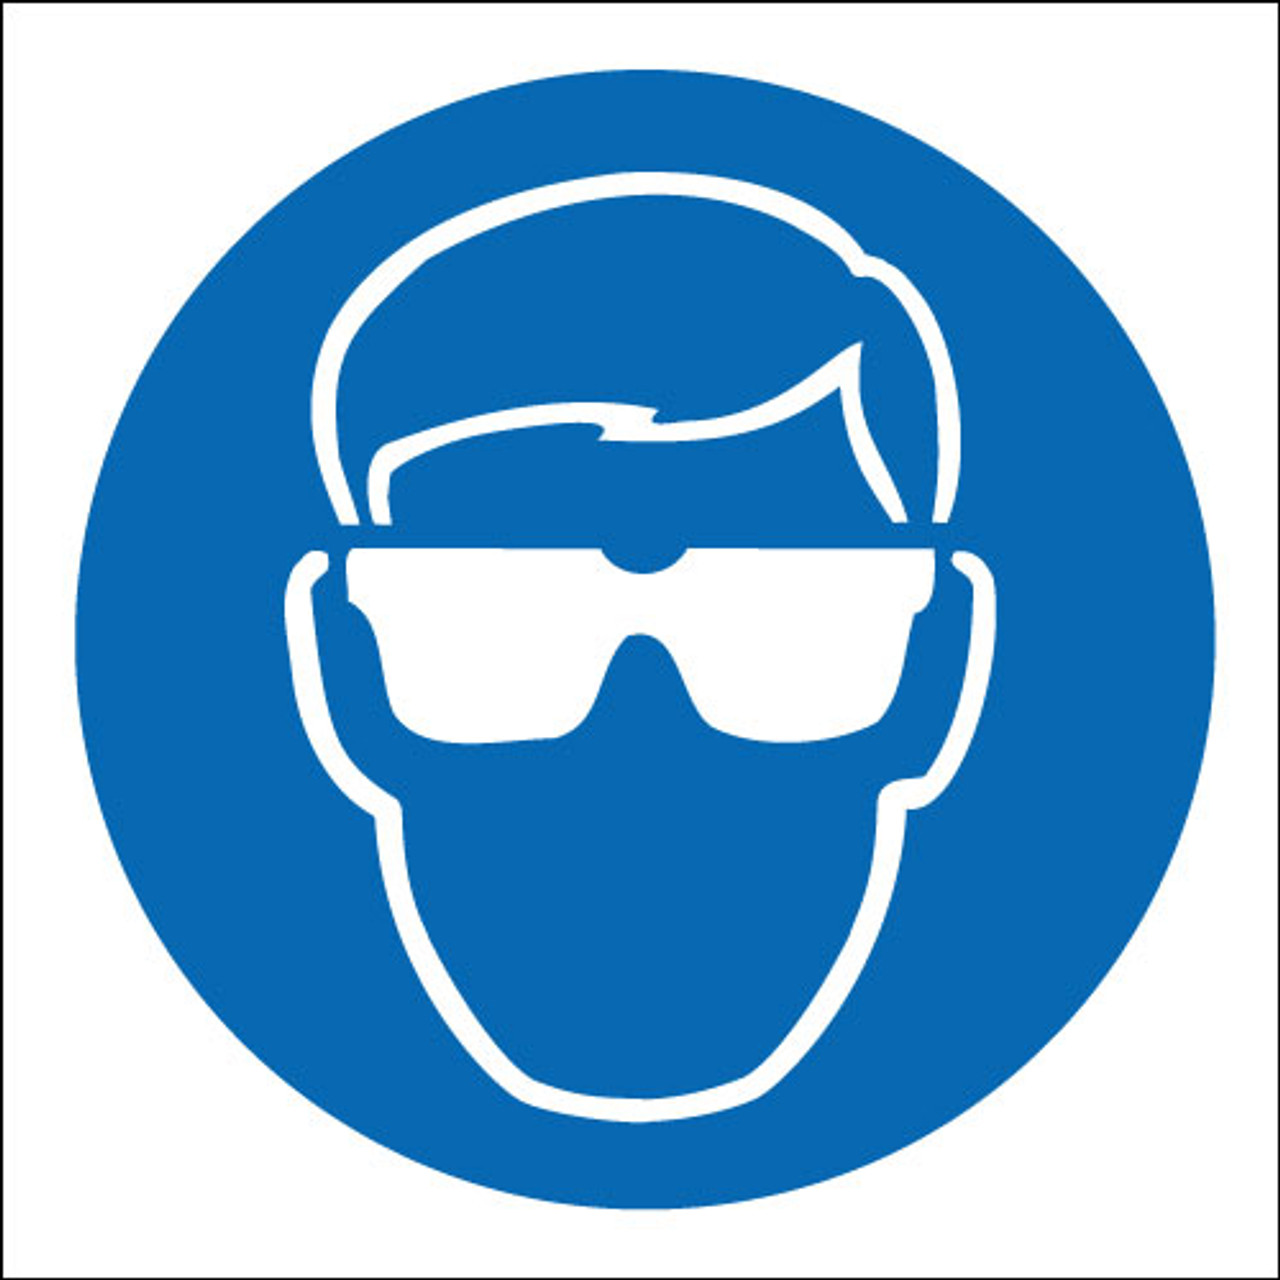 Eye Protection Logo Signs 2 Safety